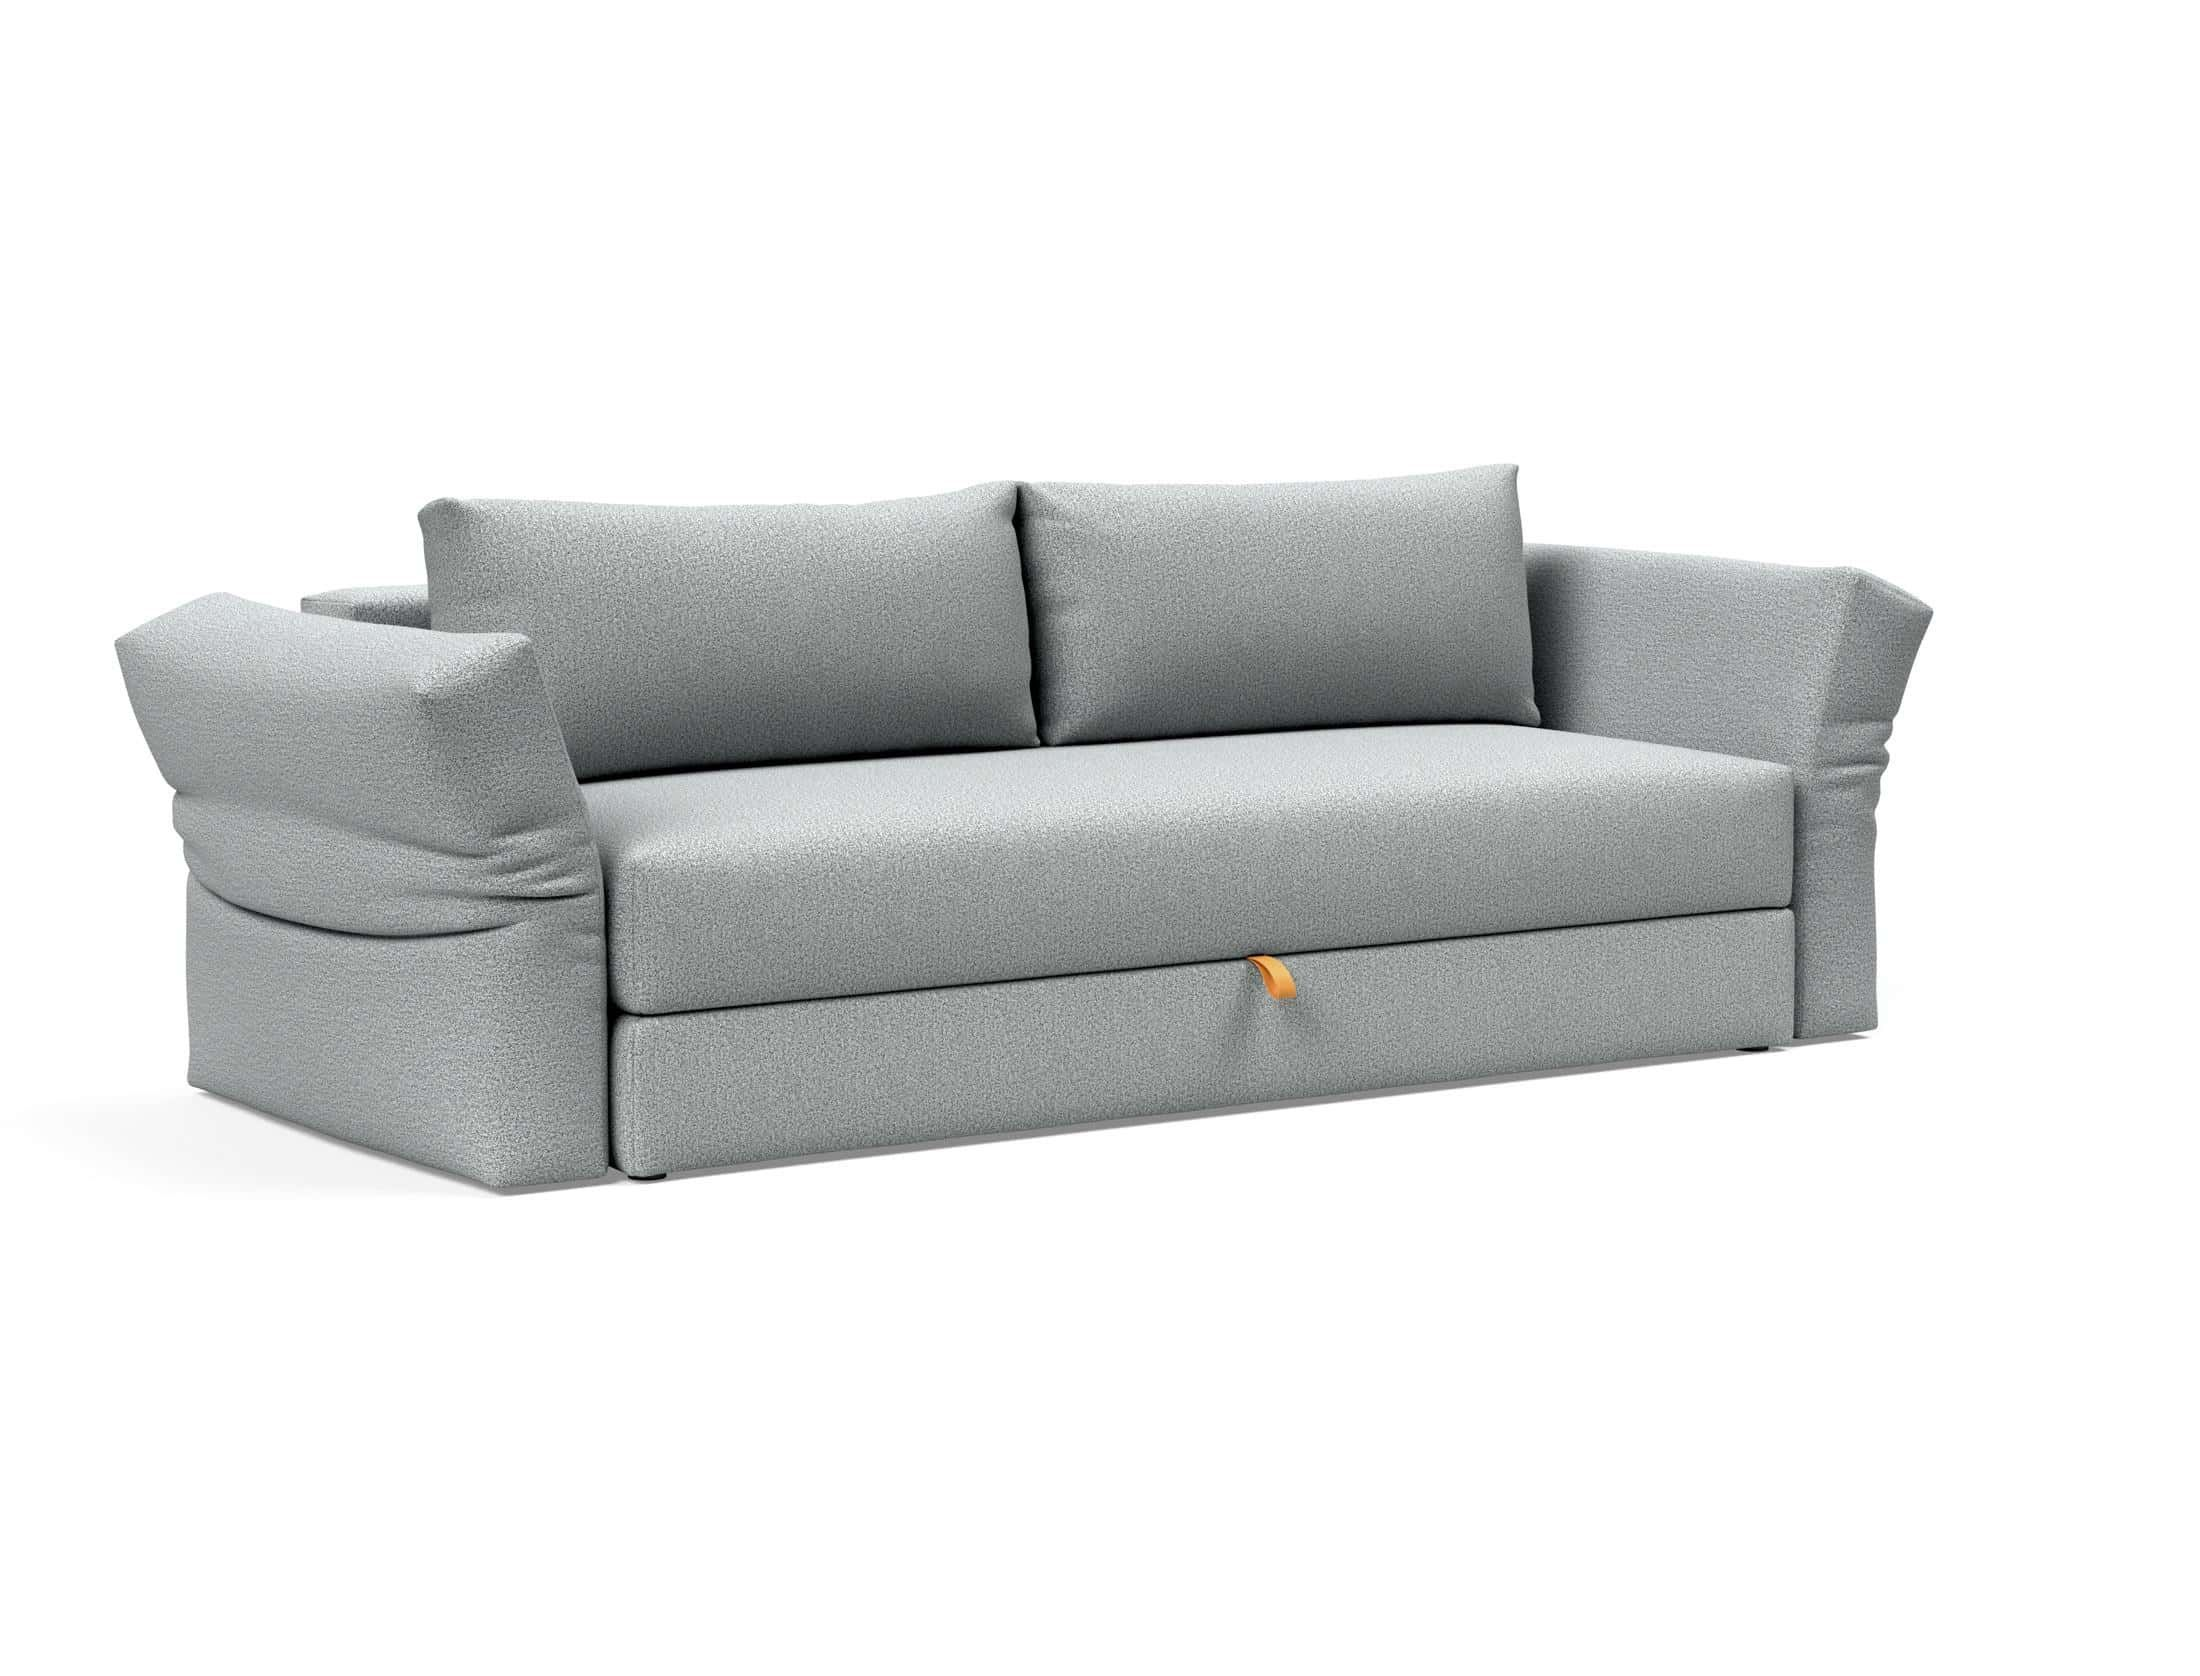 Otris Sofa Bed W Arms Full Size Melange Light Gray By Innovation Sofa Bed Design Comfortable Sofa Bed Sofa